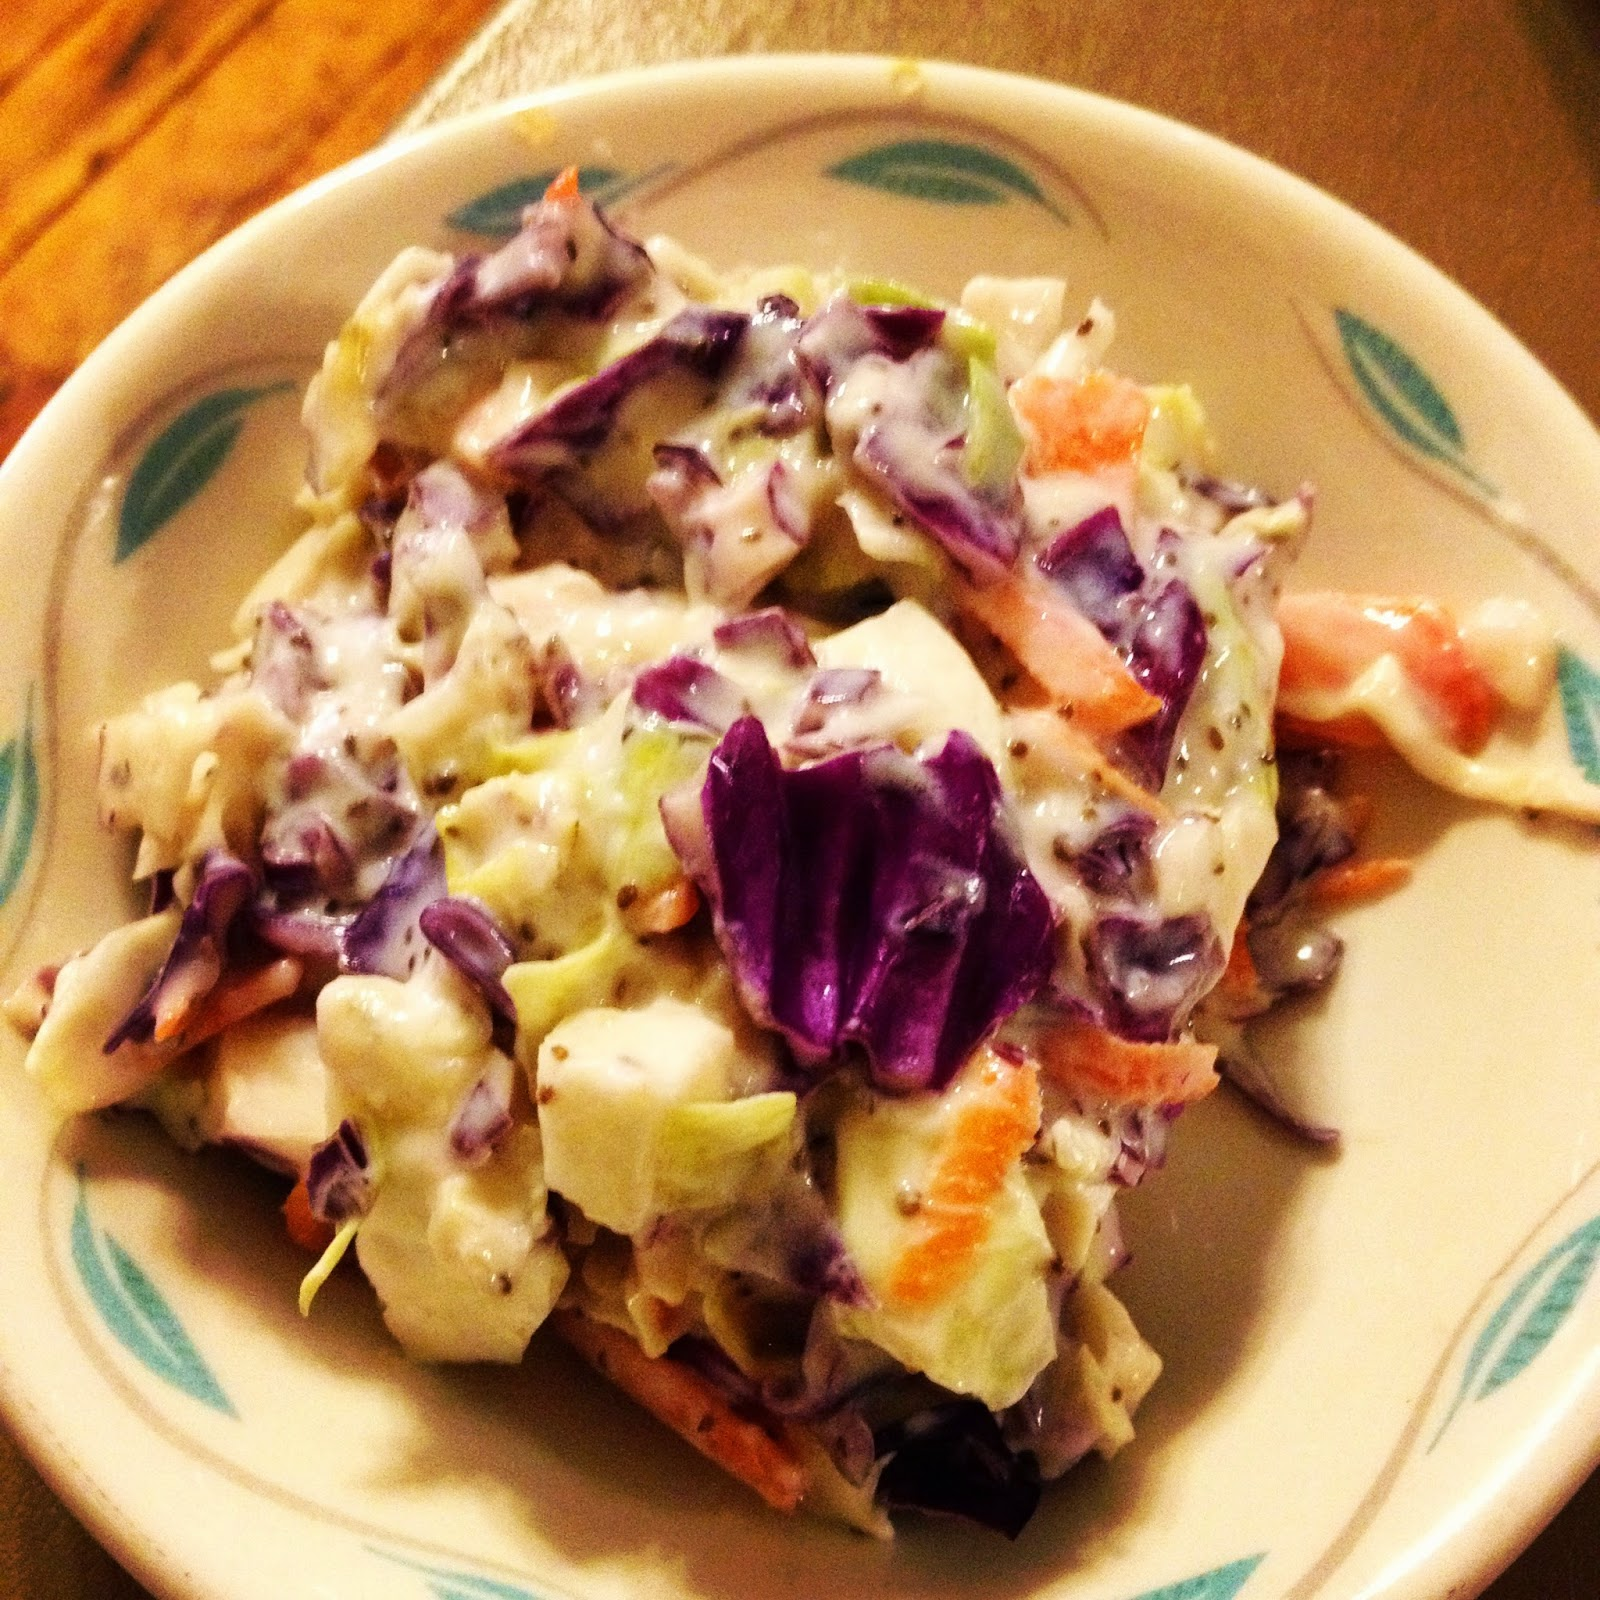 Heather's Bay City Vegan Vegetarian Coleslaw